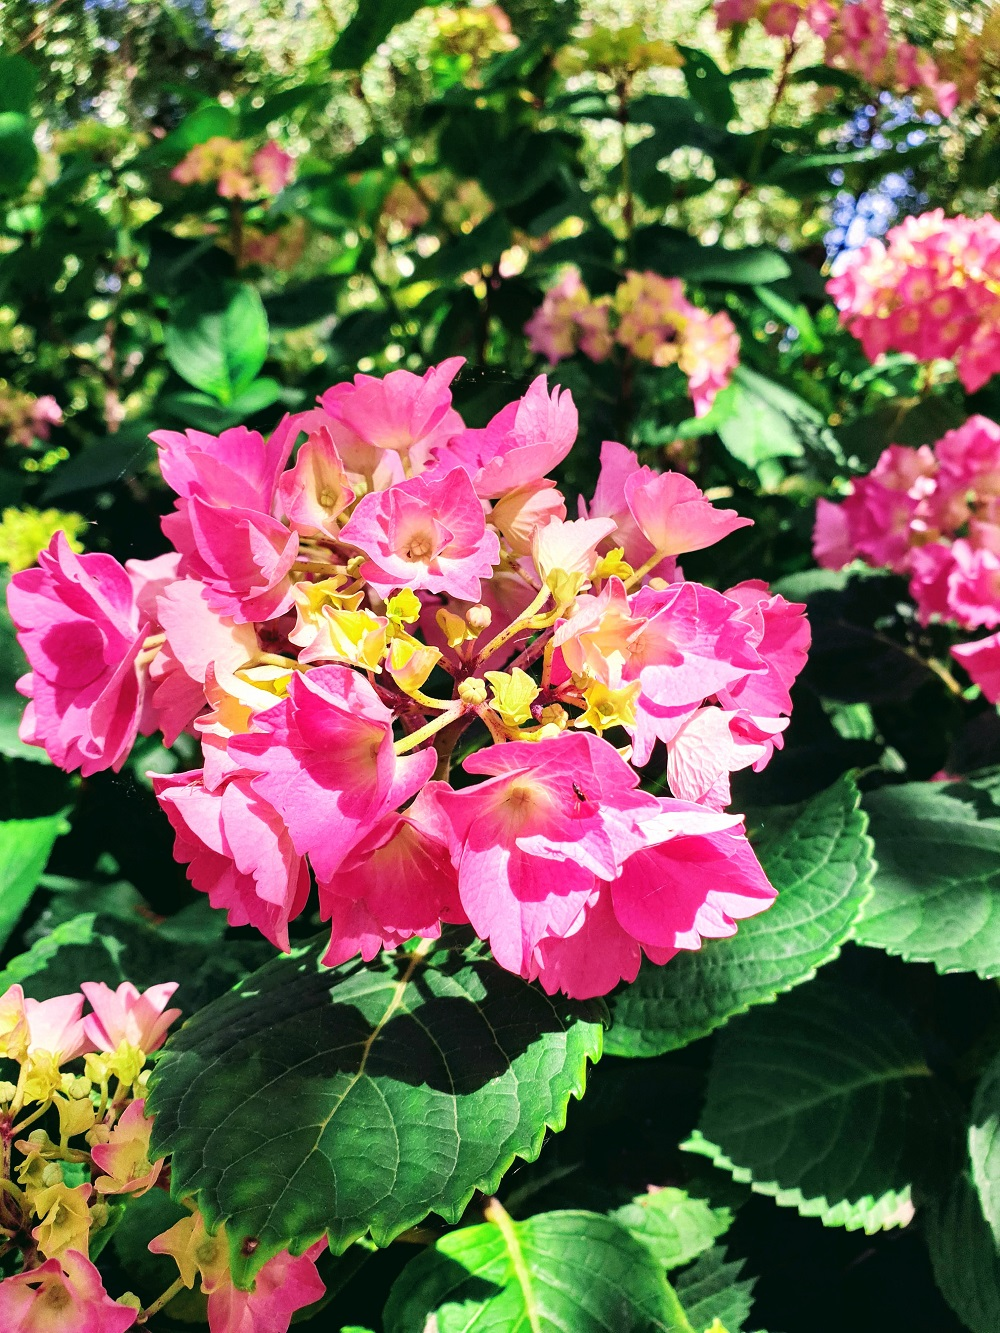 Summer Flowers At Victoria Embankment: #WWLinkUp